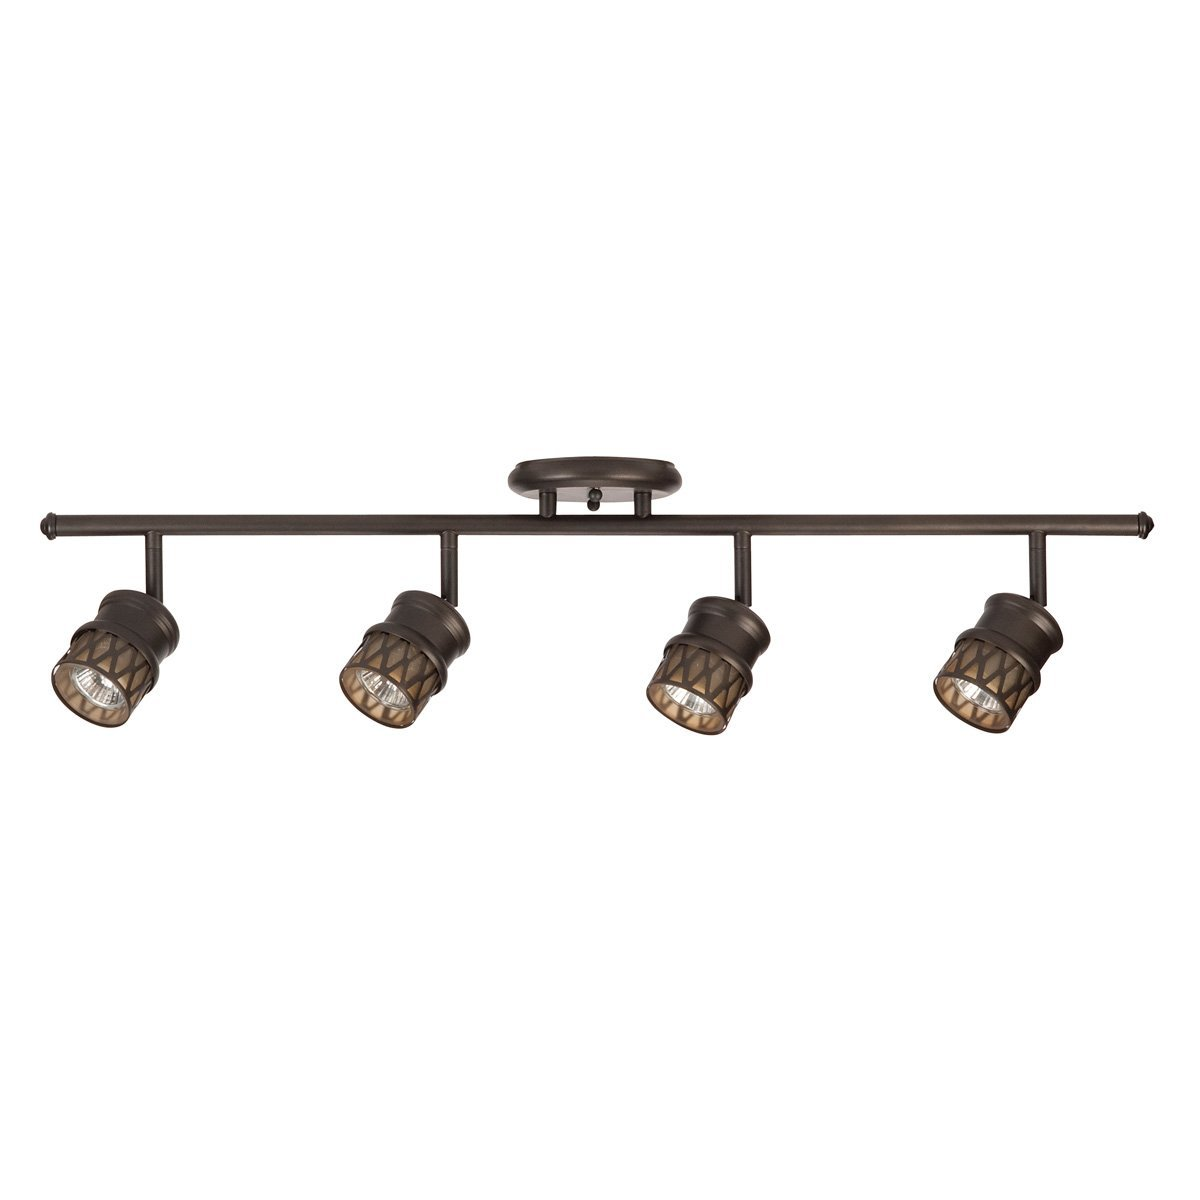 Globe-Electric-4-Light-Adjustable-Track-Lighting-Kit-Oil-Rubbed-Bronze-Finish-Champagne-Glass-Track-Heads-4x-MR16-GU10-Bulbs-Included-59063-1